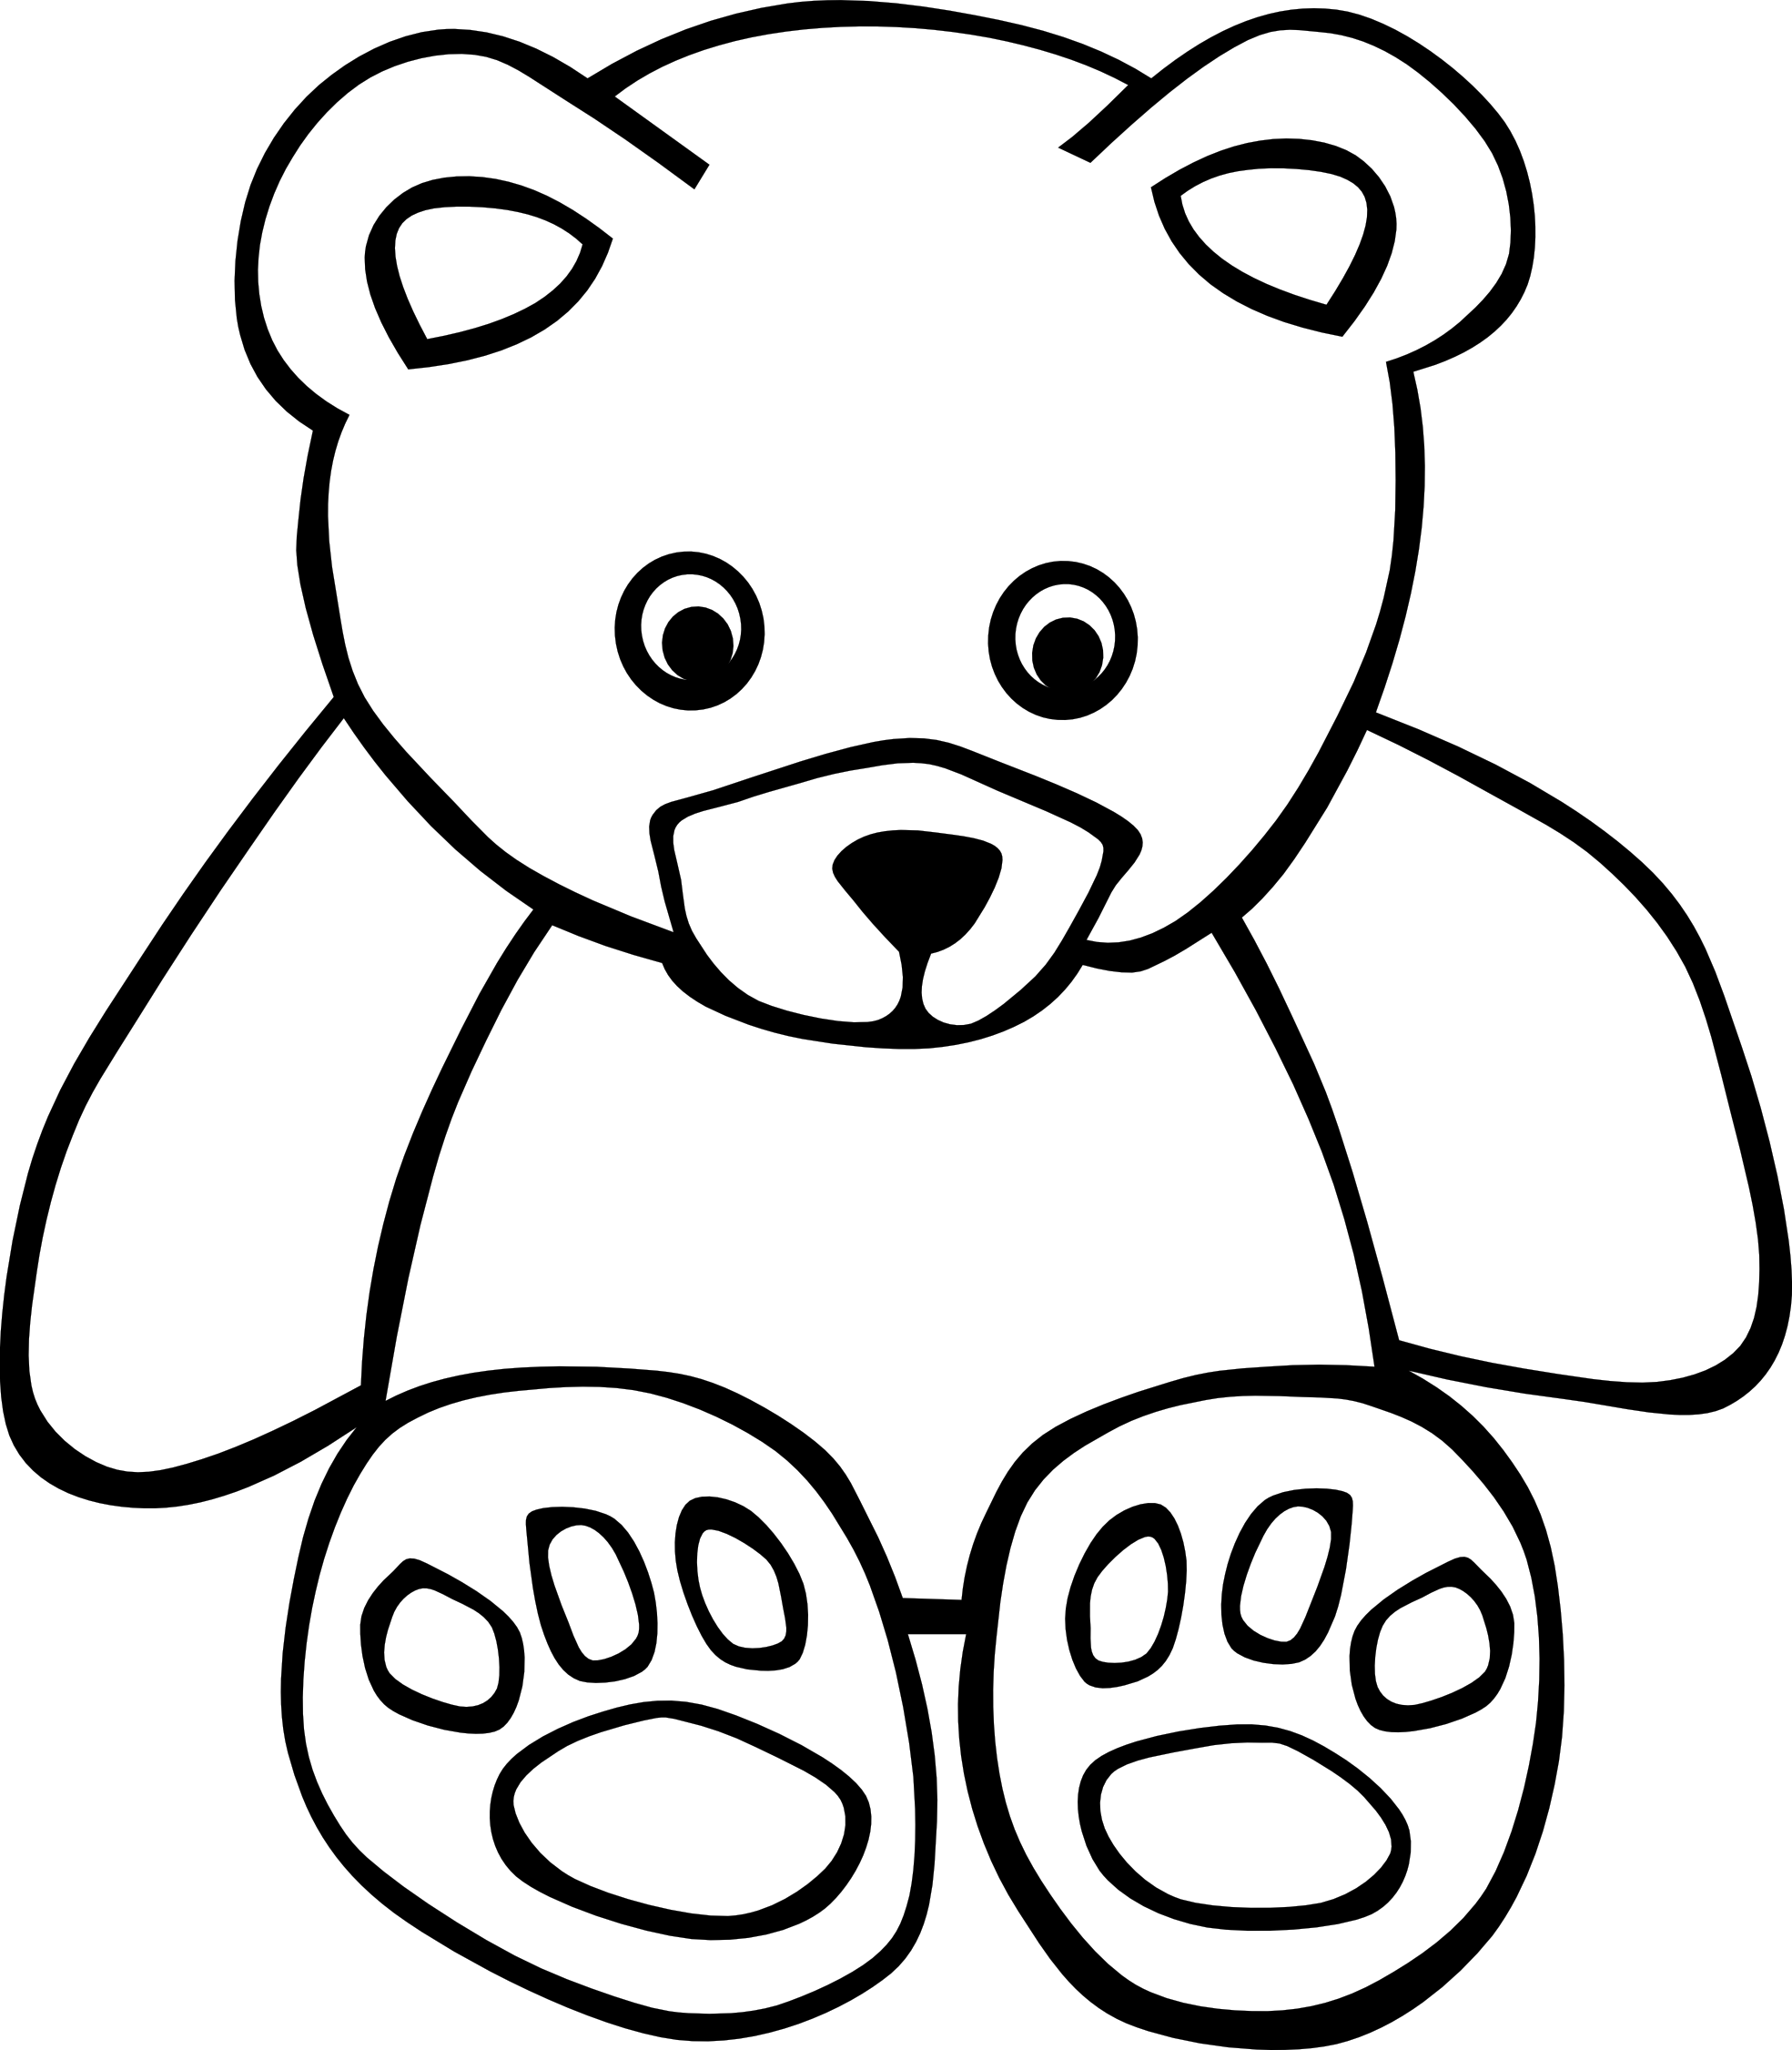 1271715 83 bear black white line art teddy bear.